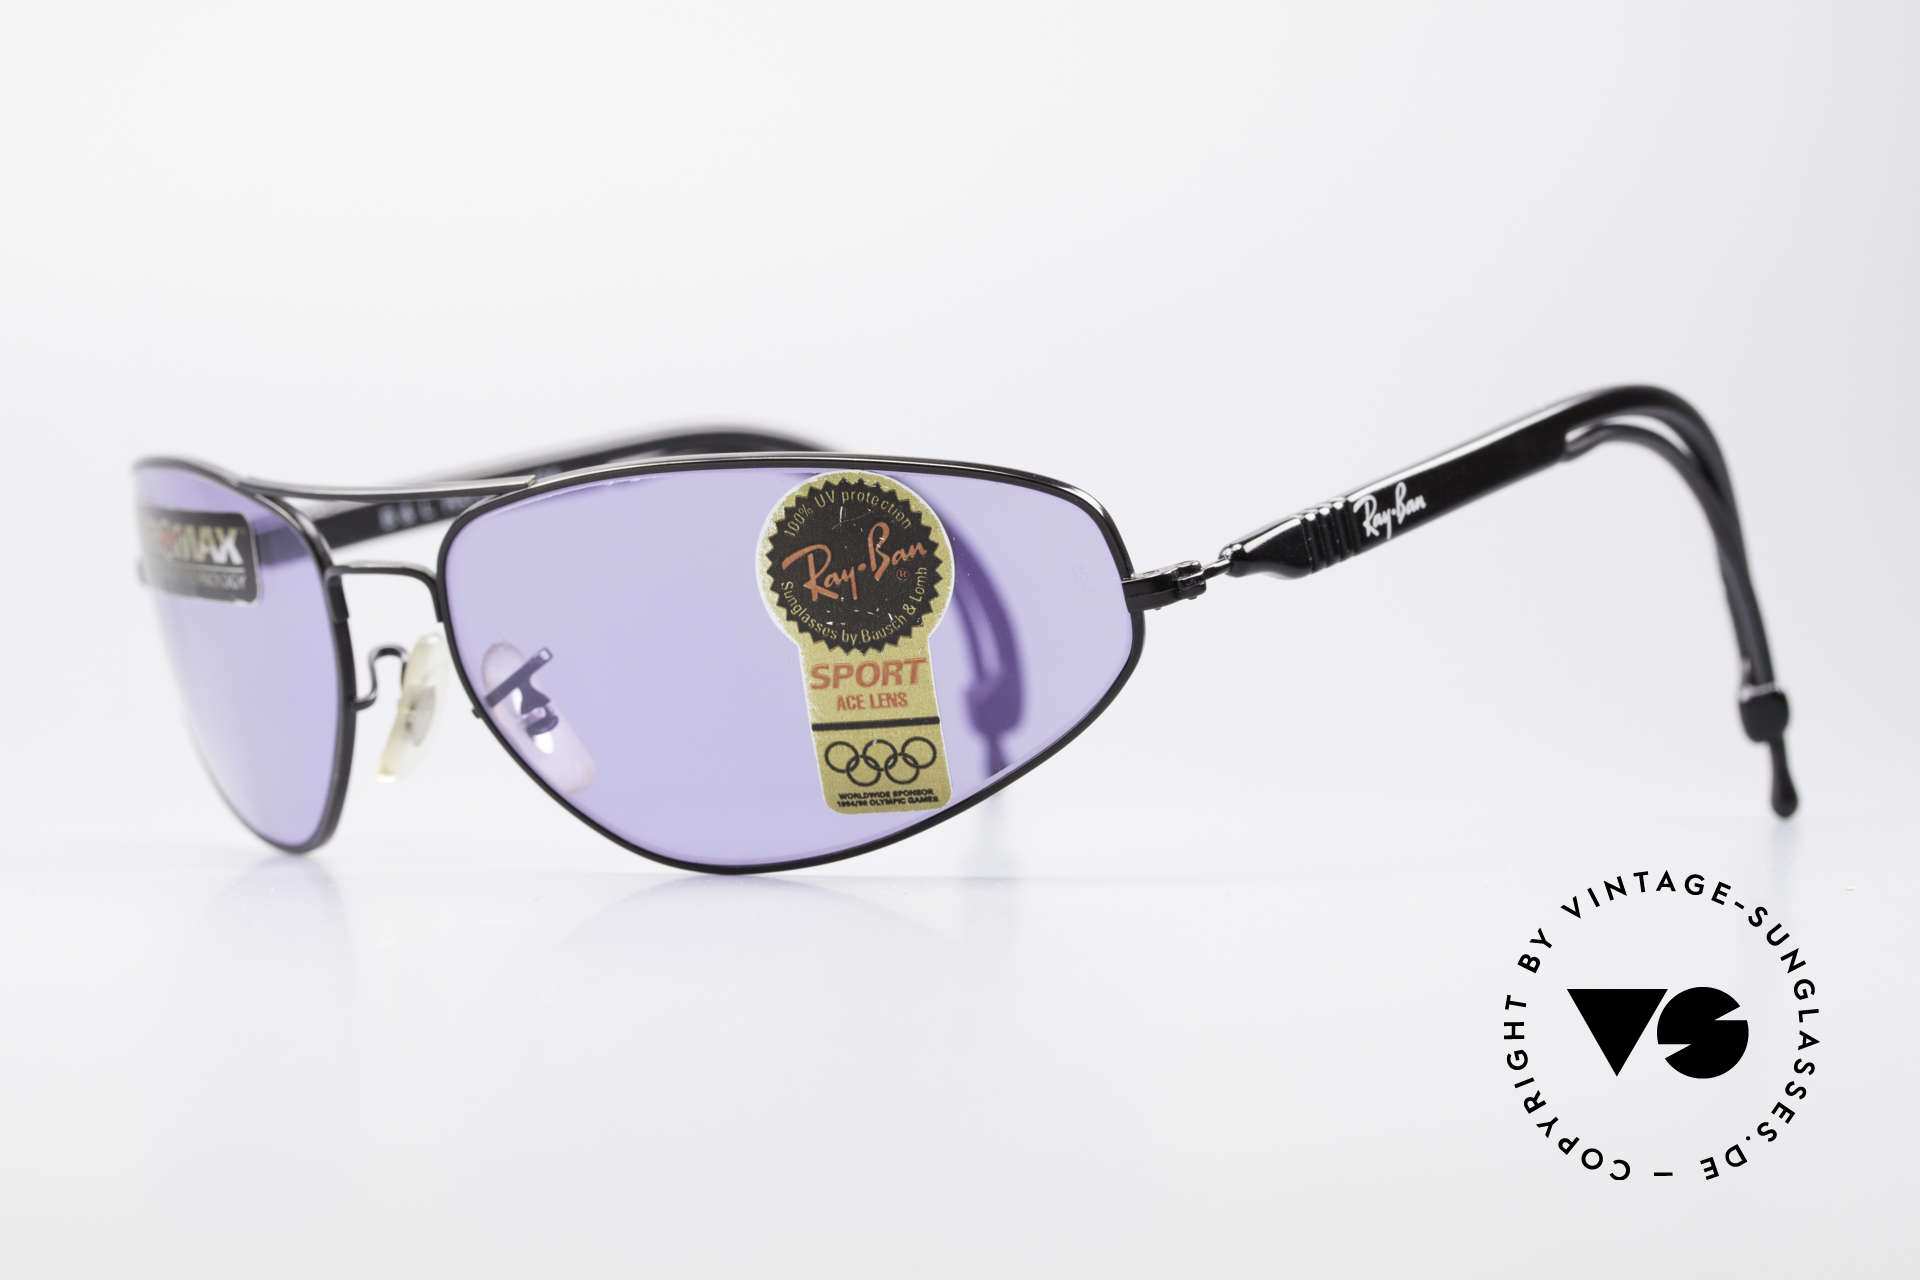 Ray Ban Sport Series 3 ACE Chromax B&L Sun Lenses, the B&L Chromax lenses intensify color contrasts, Made for Men